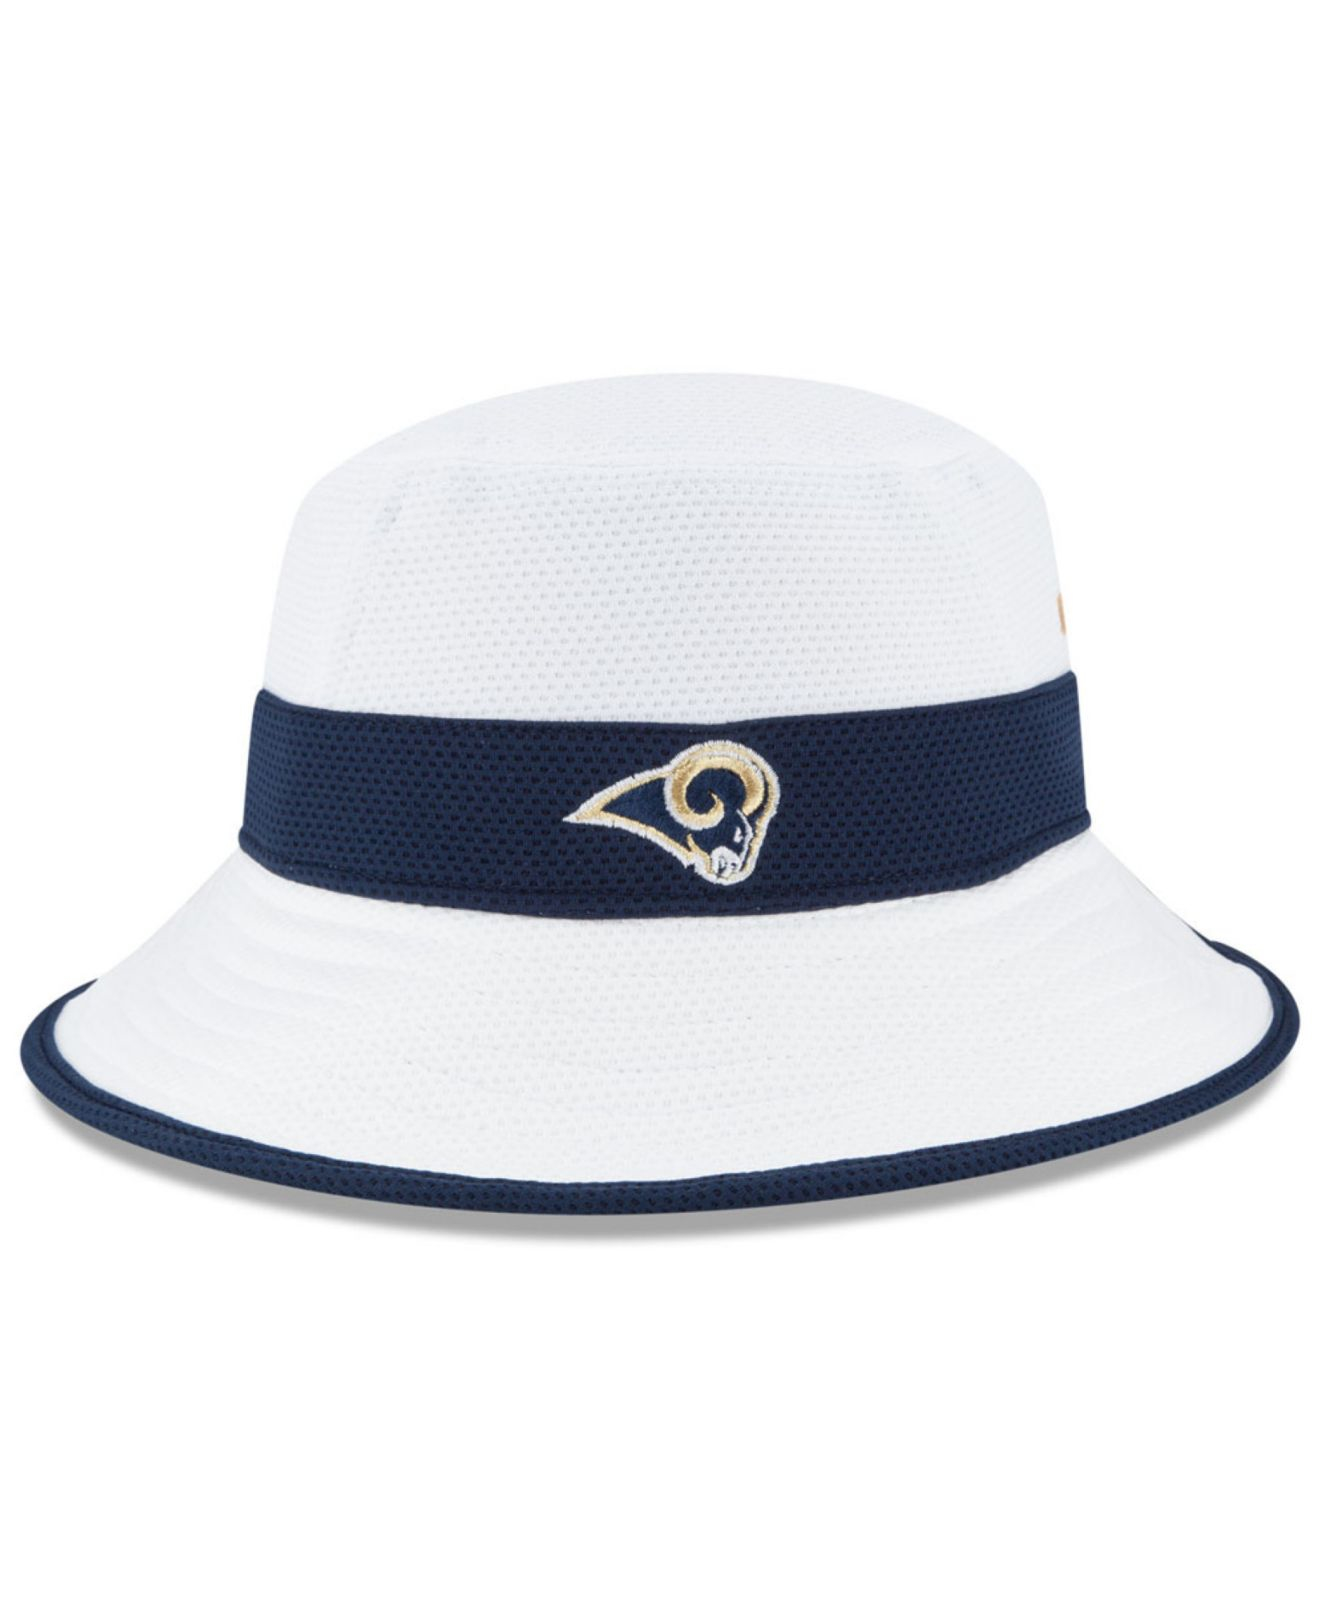 Lyst - KTZ Los Angeles Rams Training Camp Reverse Bucket Hat in ... 2f14a3aff6a